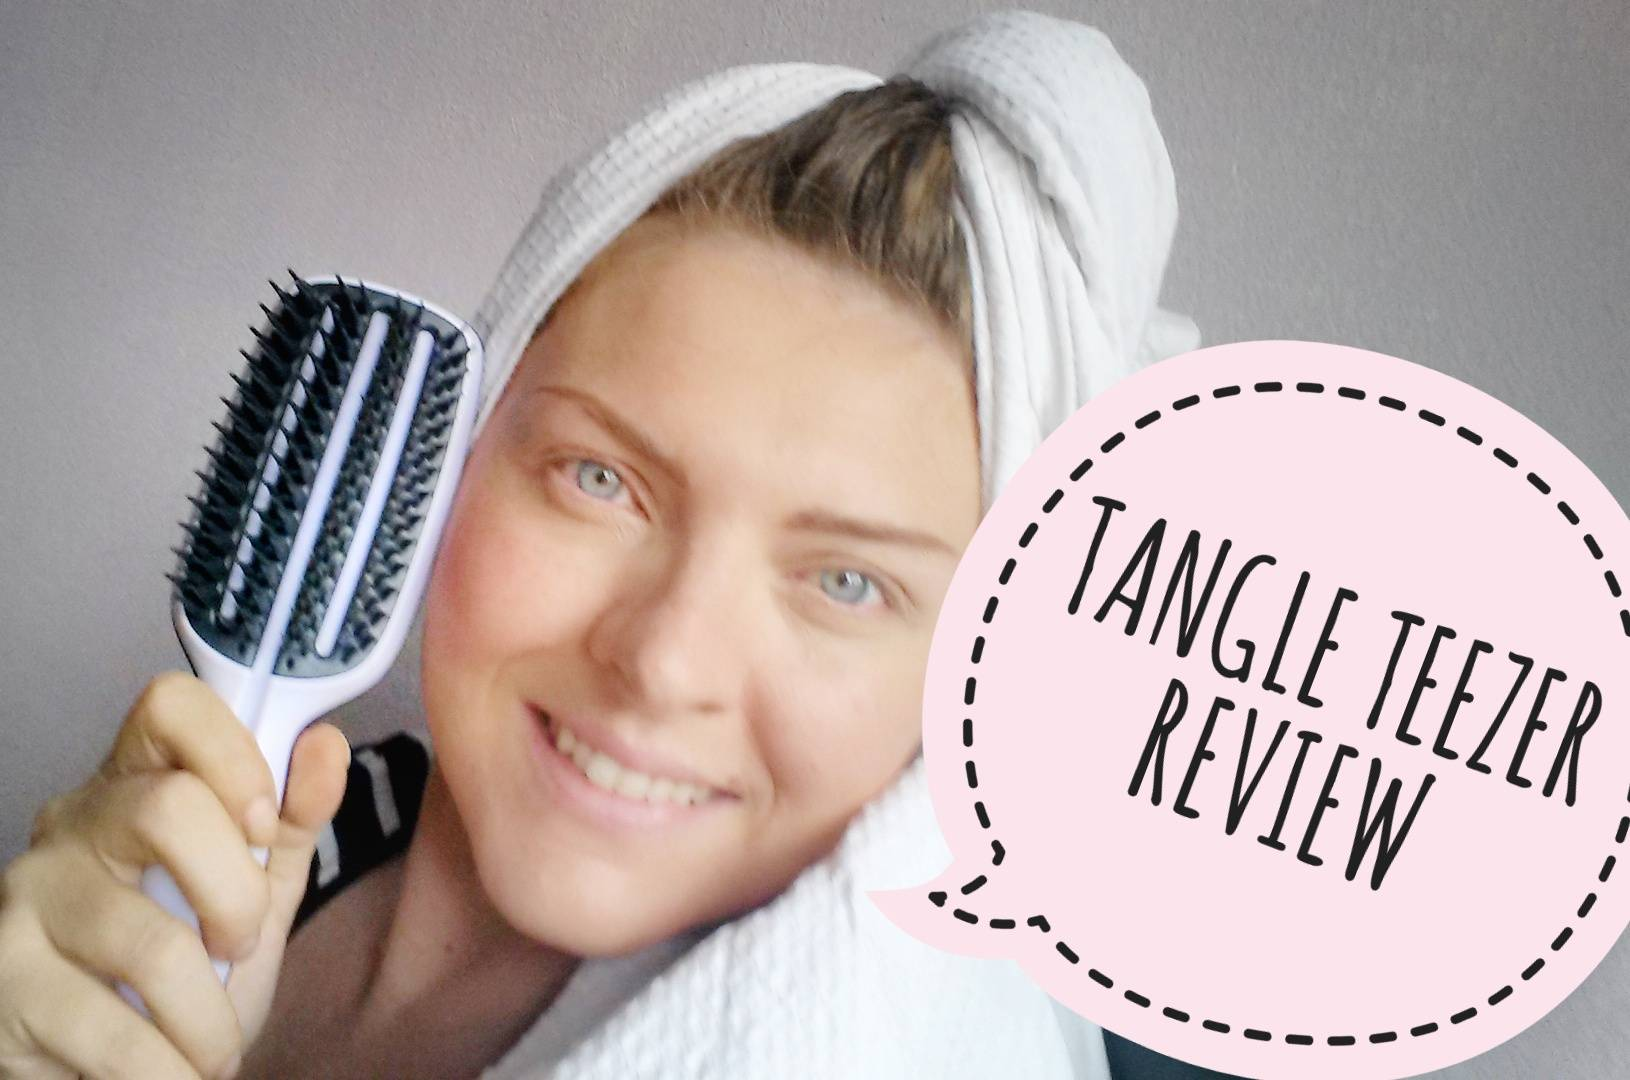 tangle-teezer-blow-styling-recensione